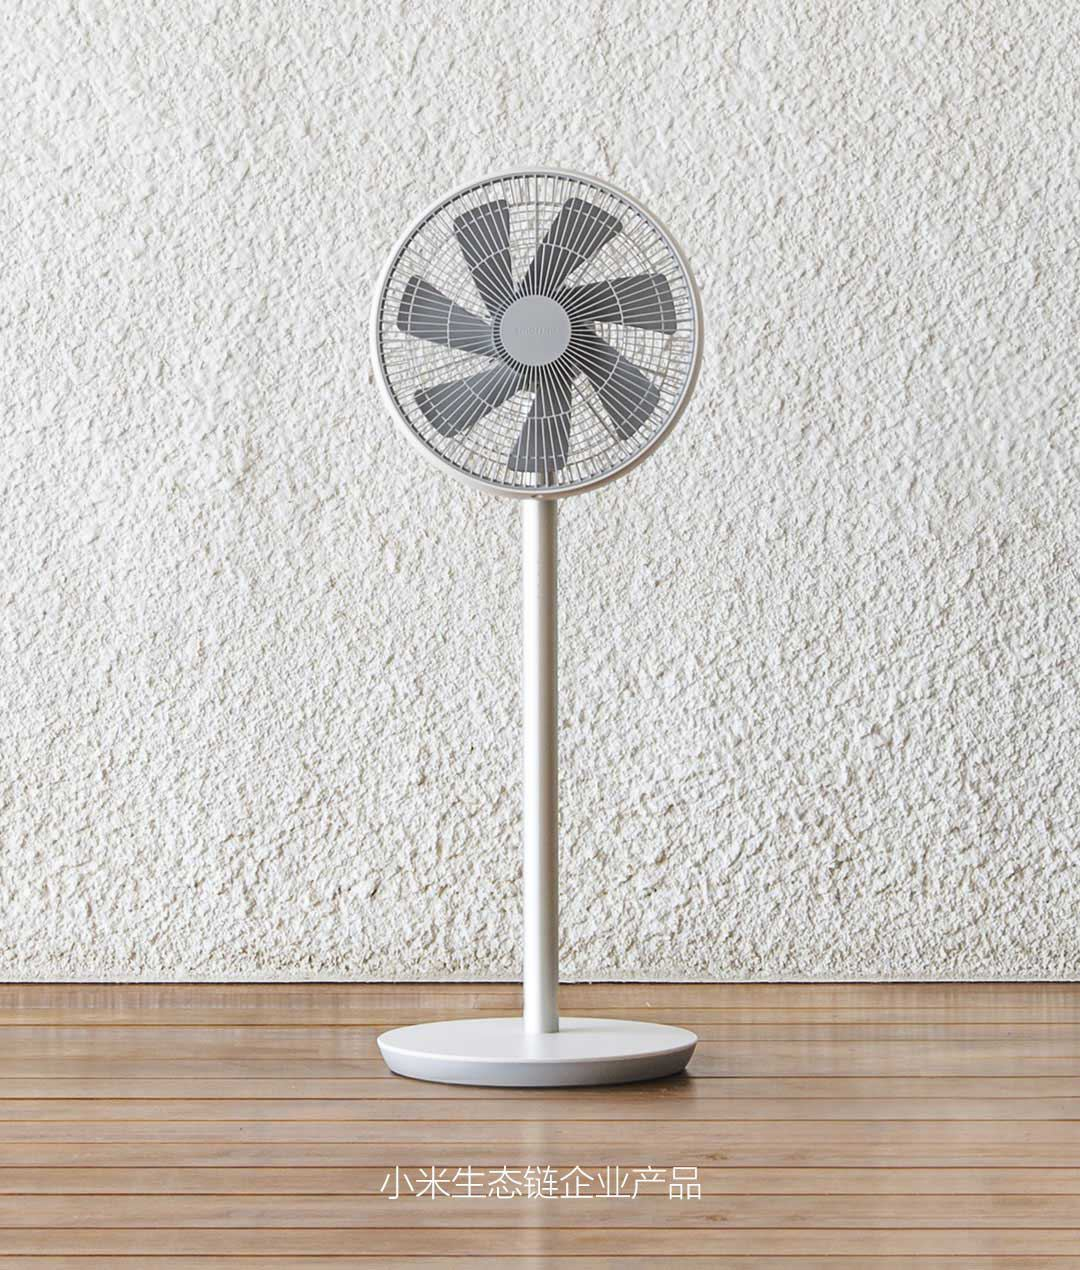 hinh-anh-xiaomi-mi-smart-fan-quat-may-thong-minh-mi-smart-fan-1